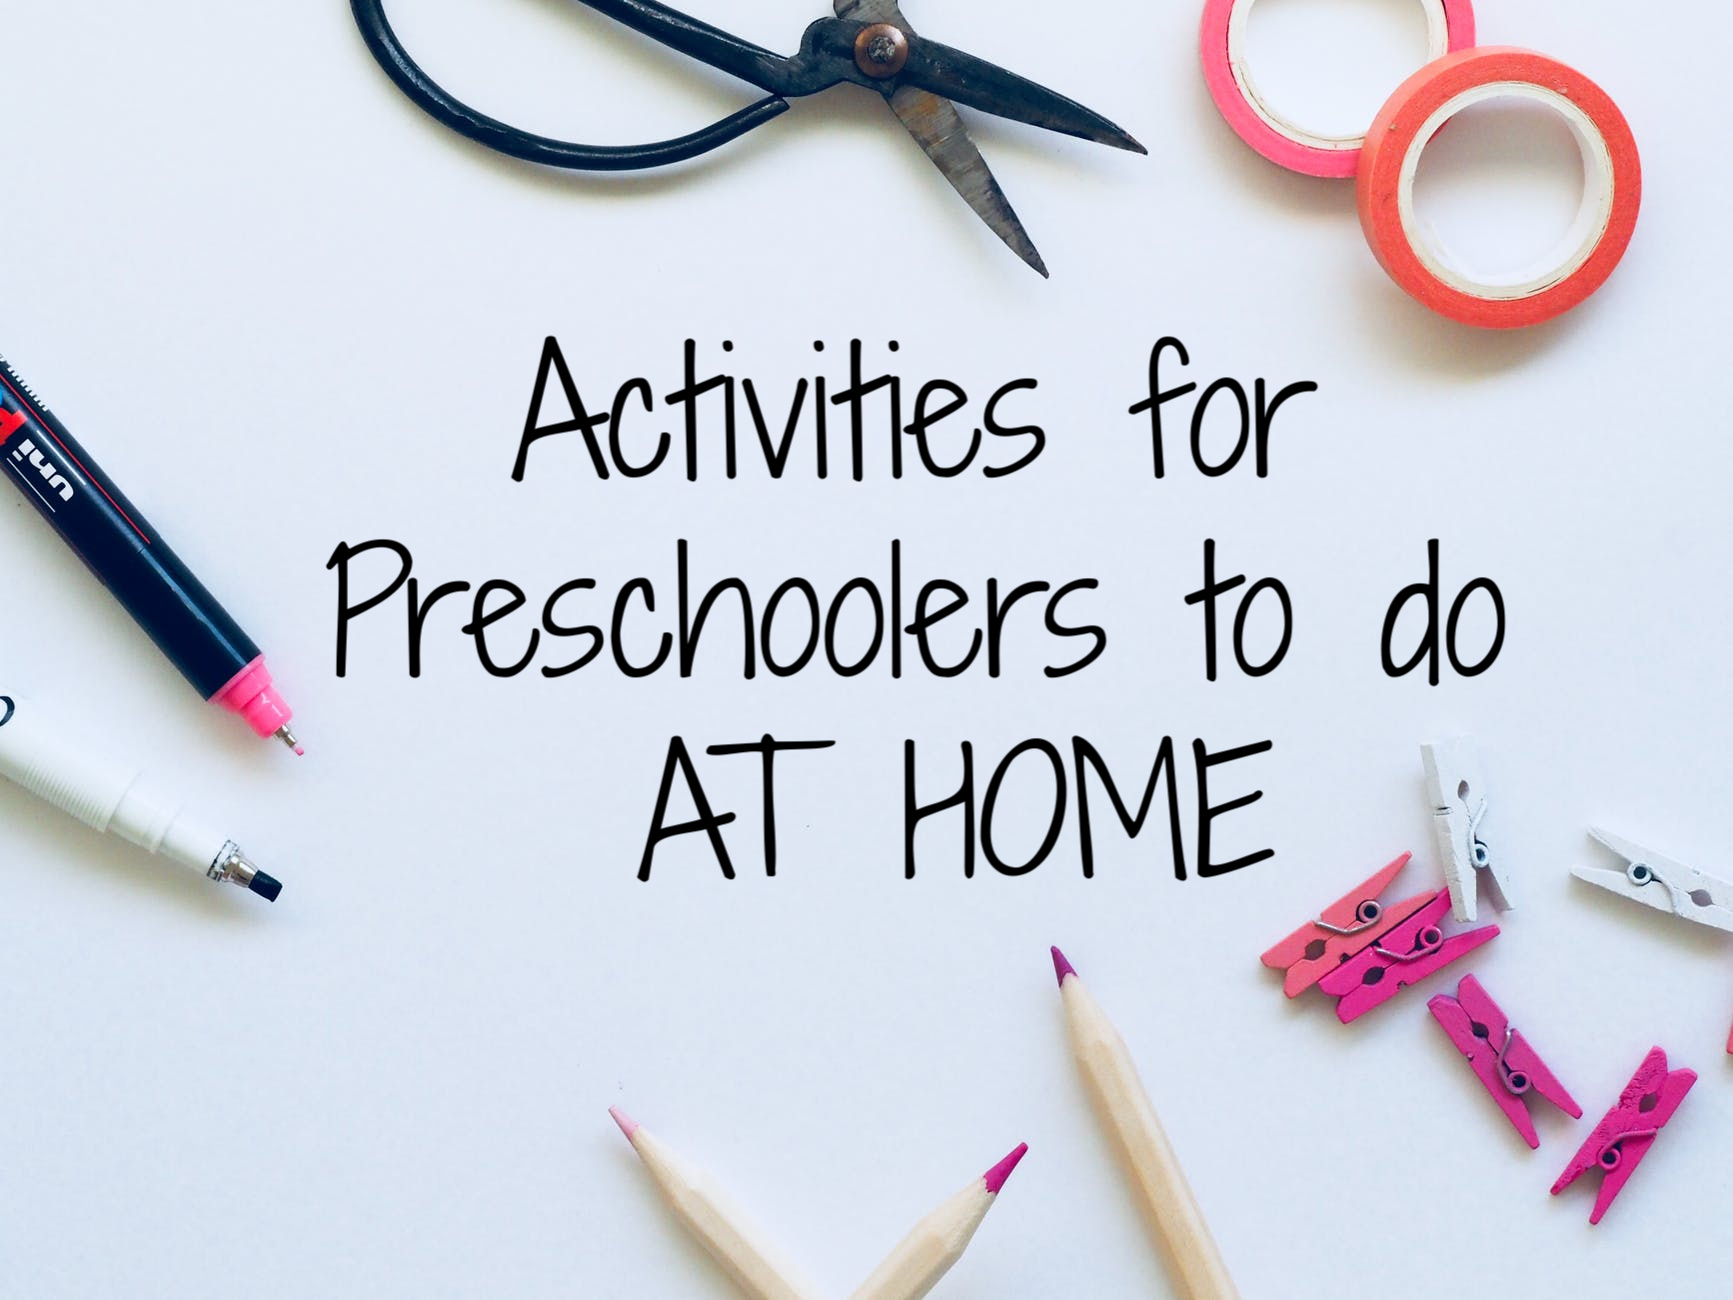 Activities for Preschoolers to do At Home